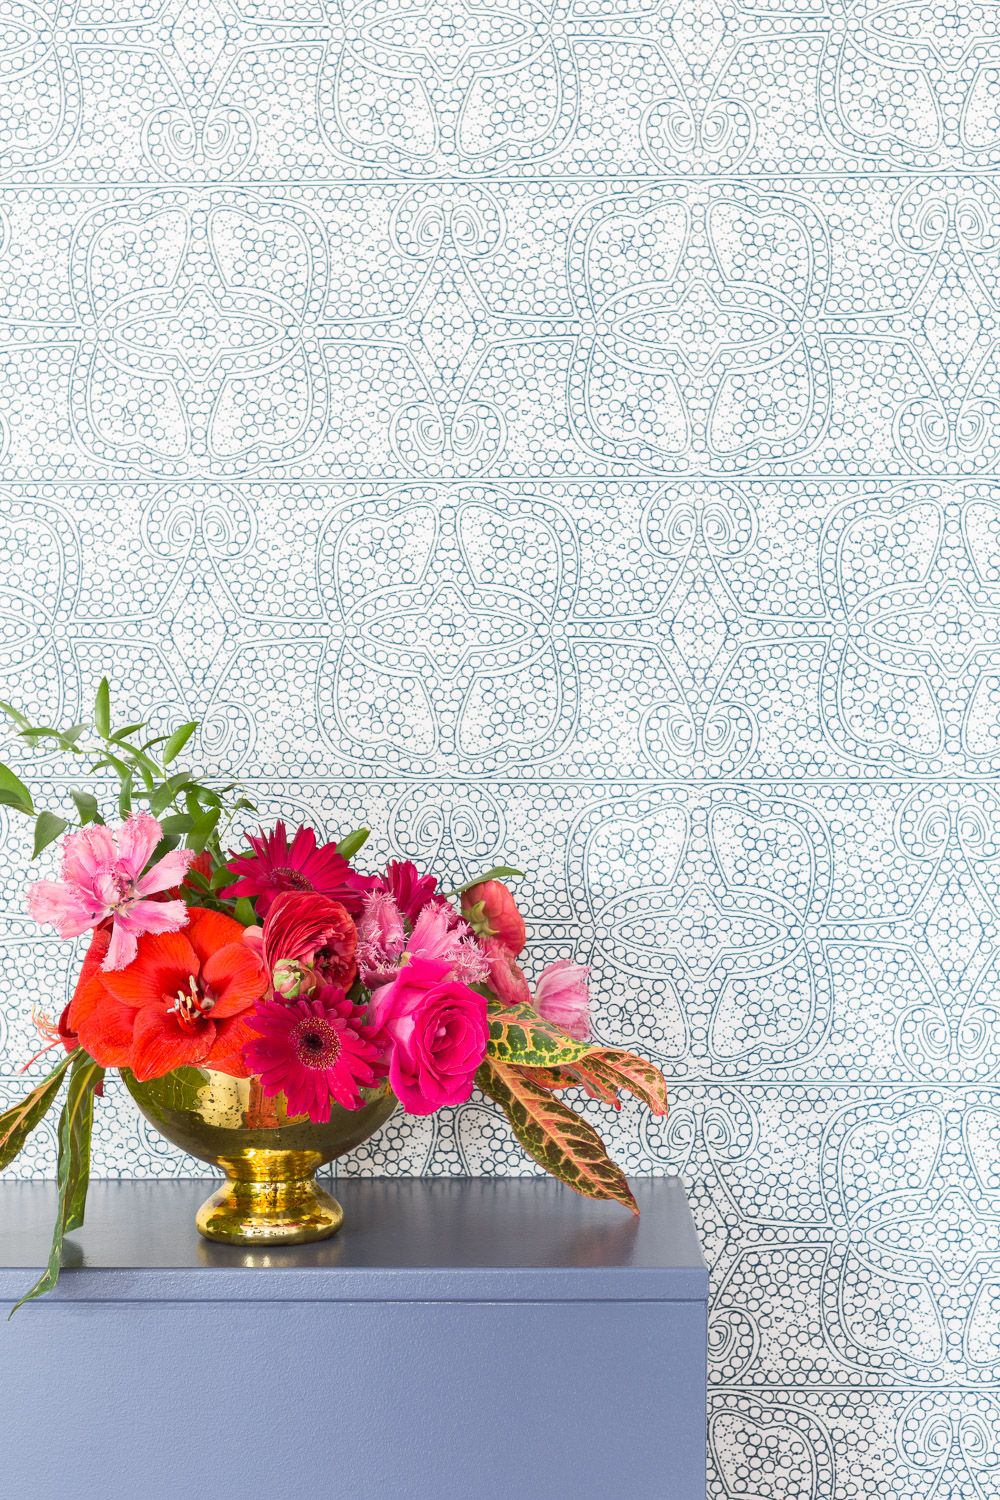 Bedroom wallpaper and florals